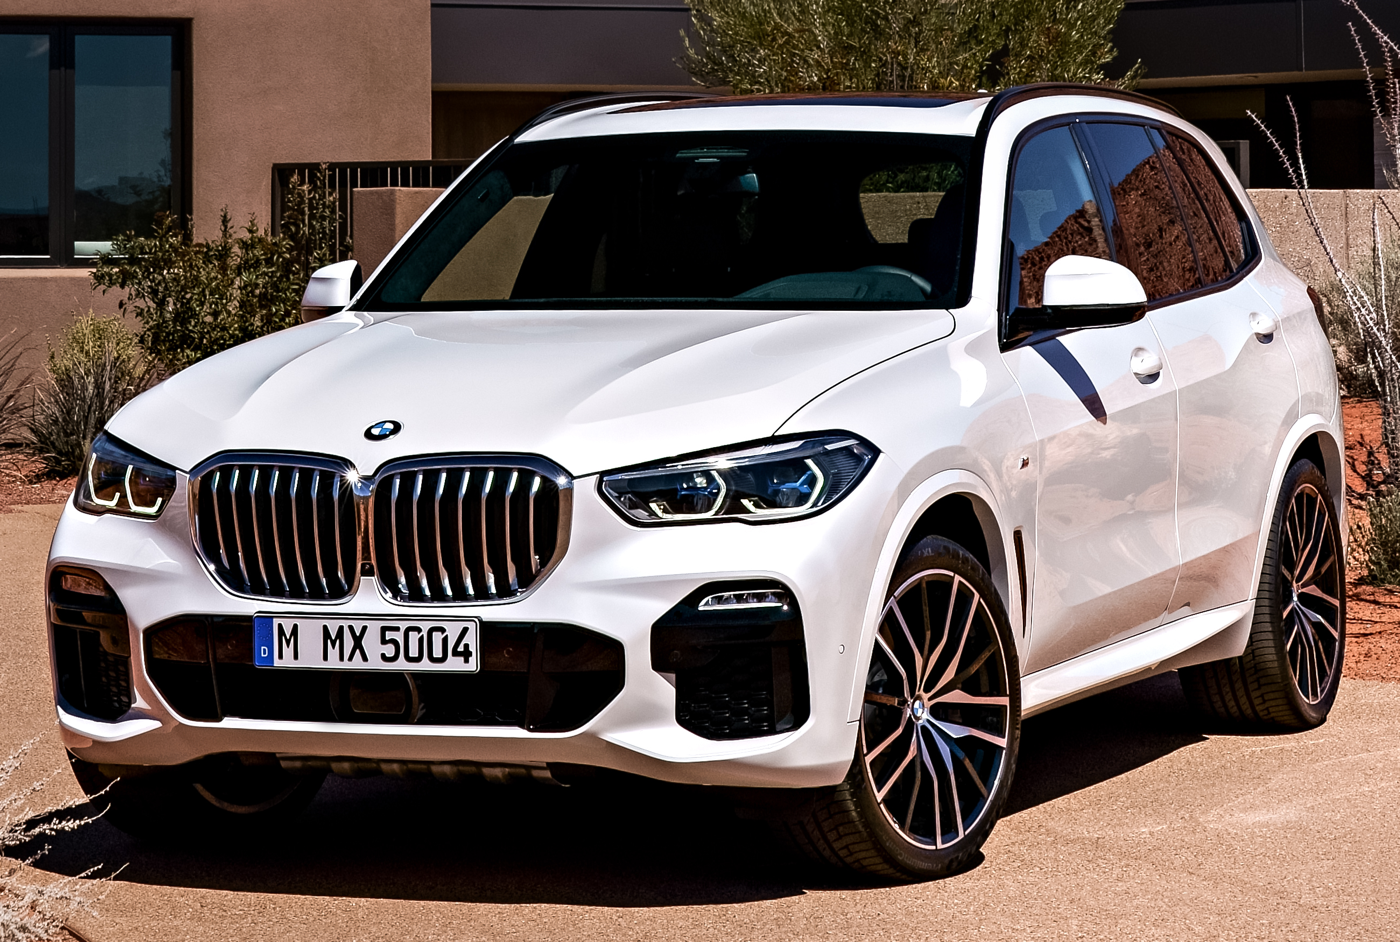 2019 all-new BMW X5 courtesy BMW AG